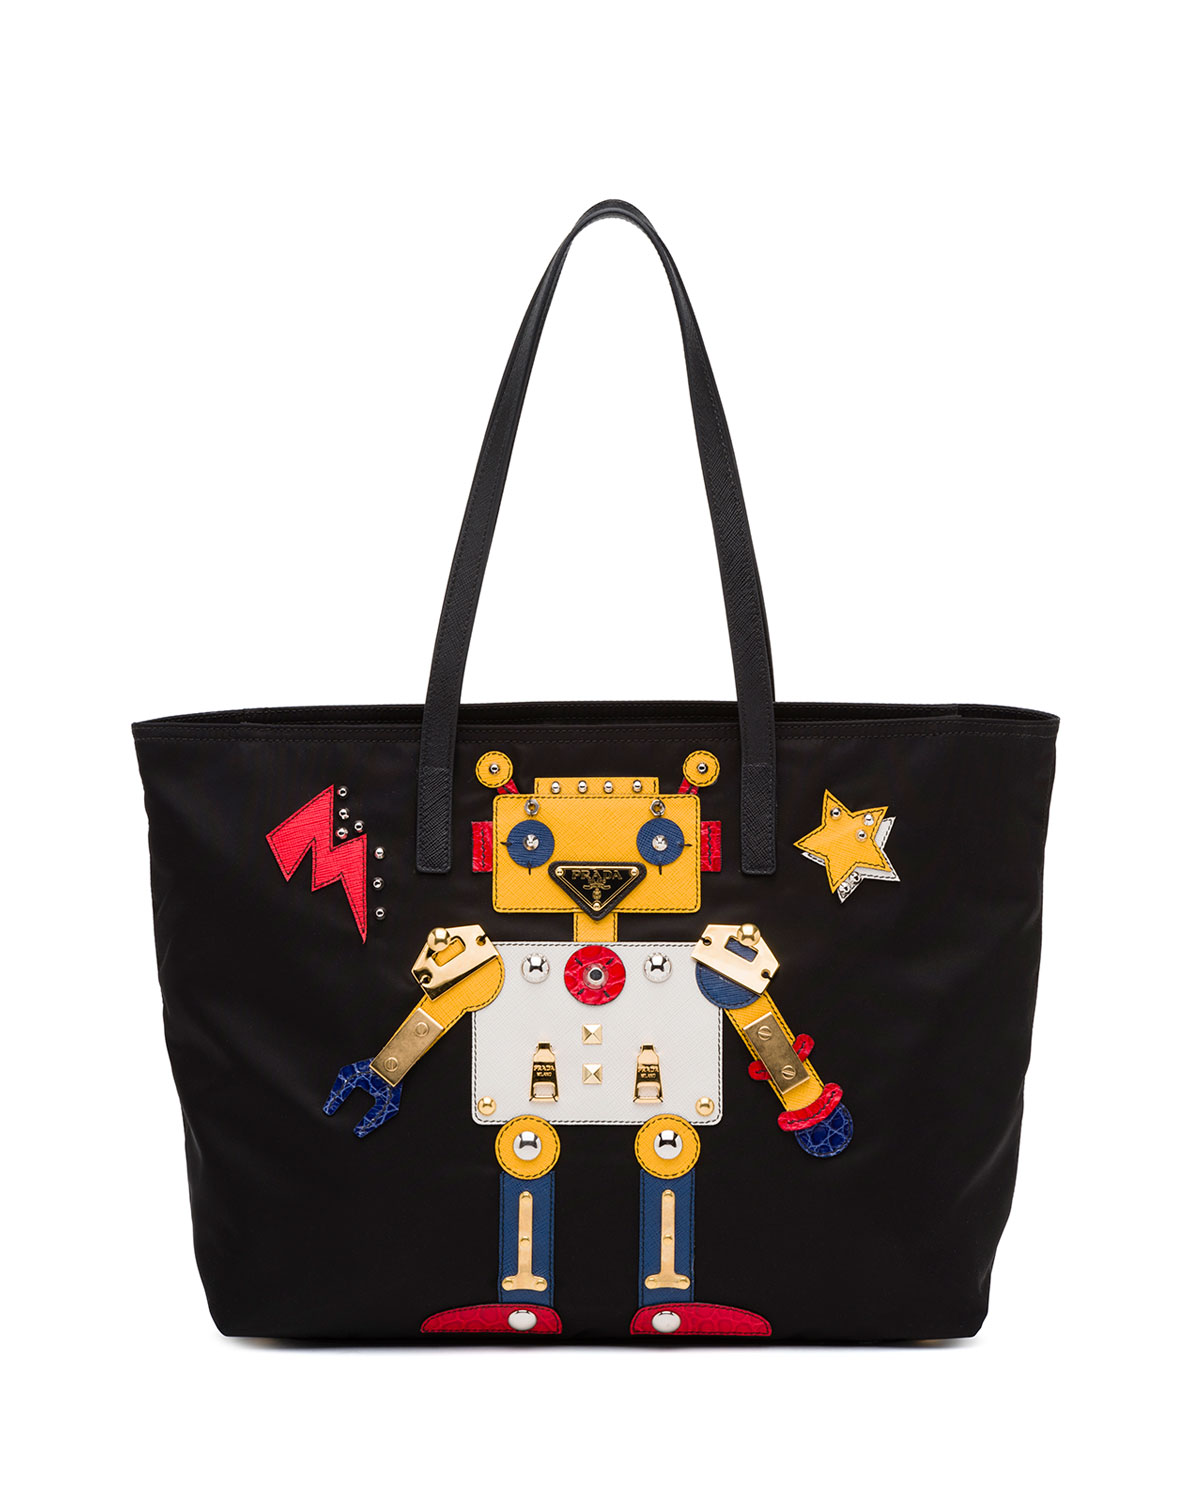 93d88bcd911d Prada Medium Nylon Robot Tote Bag